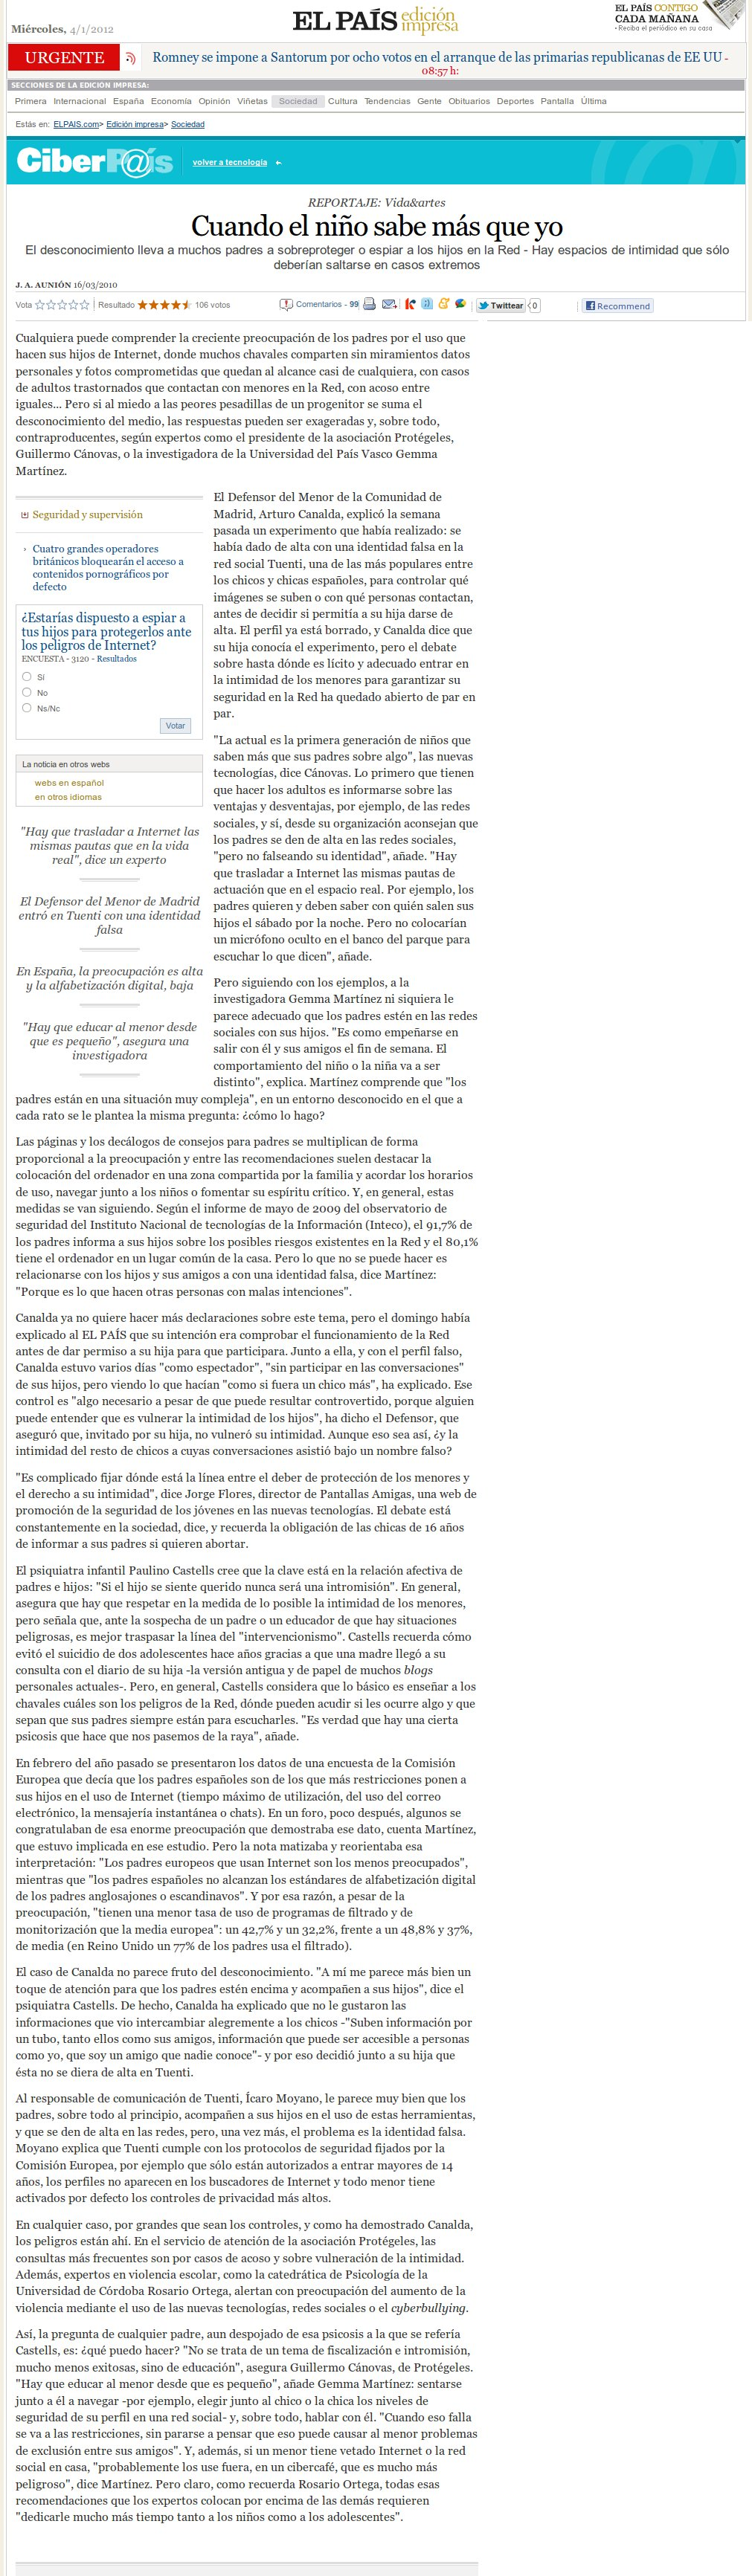 20100316-elpais-com-capturado20120104